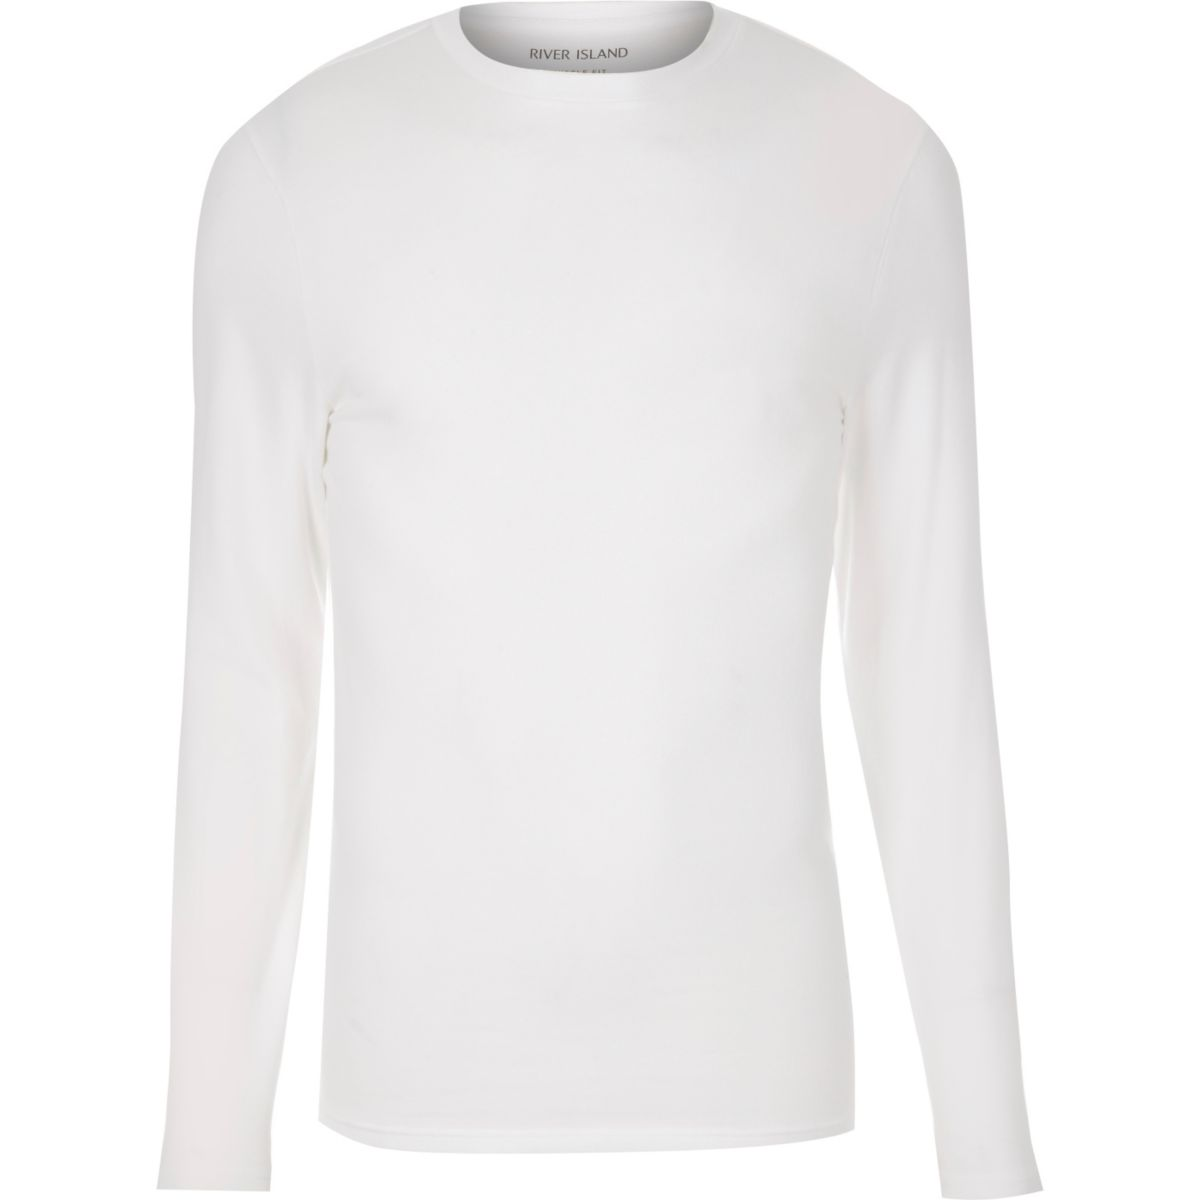 White muscle fit long sleeve t shirt t shirts vests for Mens long sleeve t shirts sale